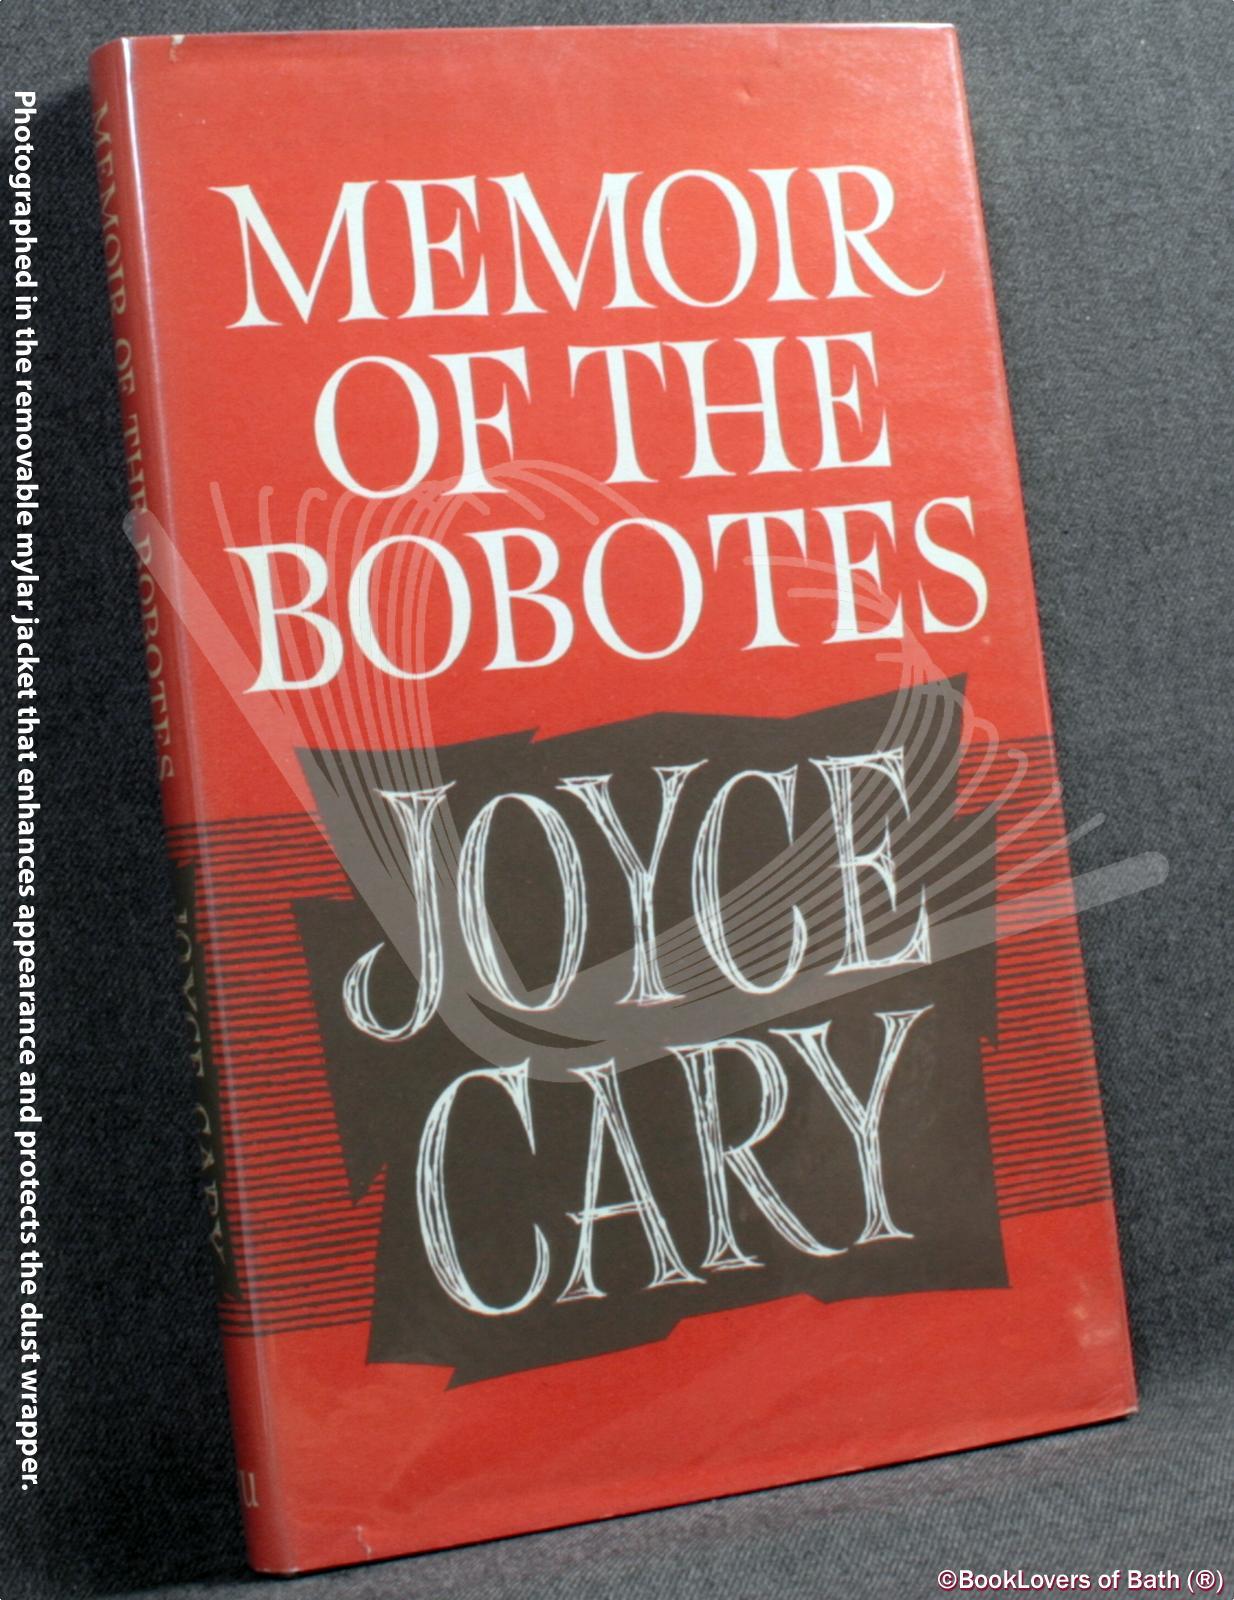 Memoir Of The Bobotes - Joyce Cary